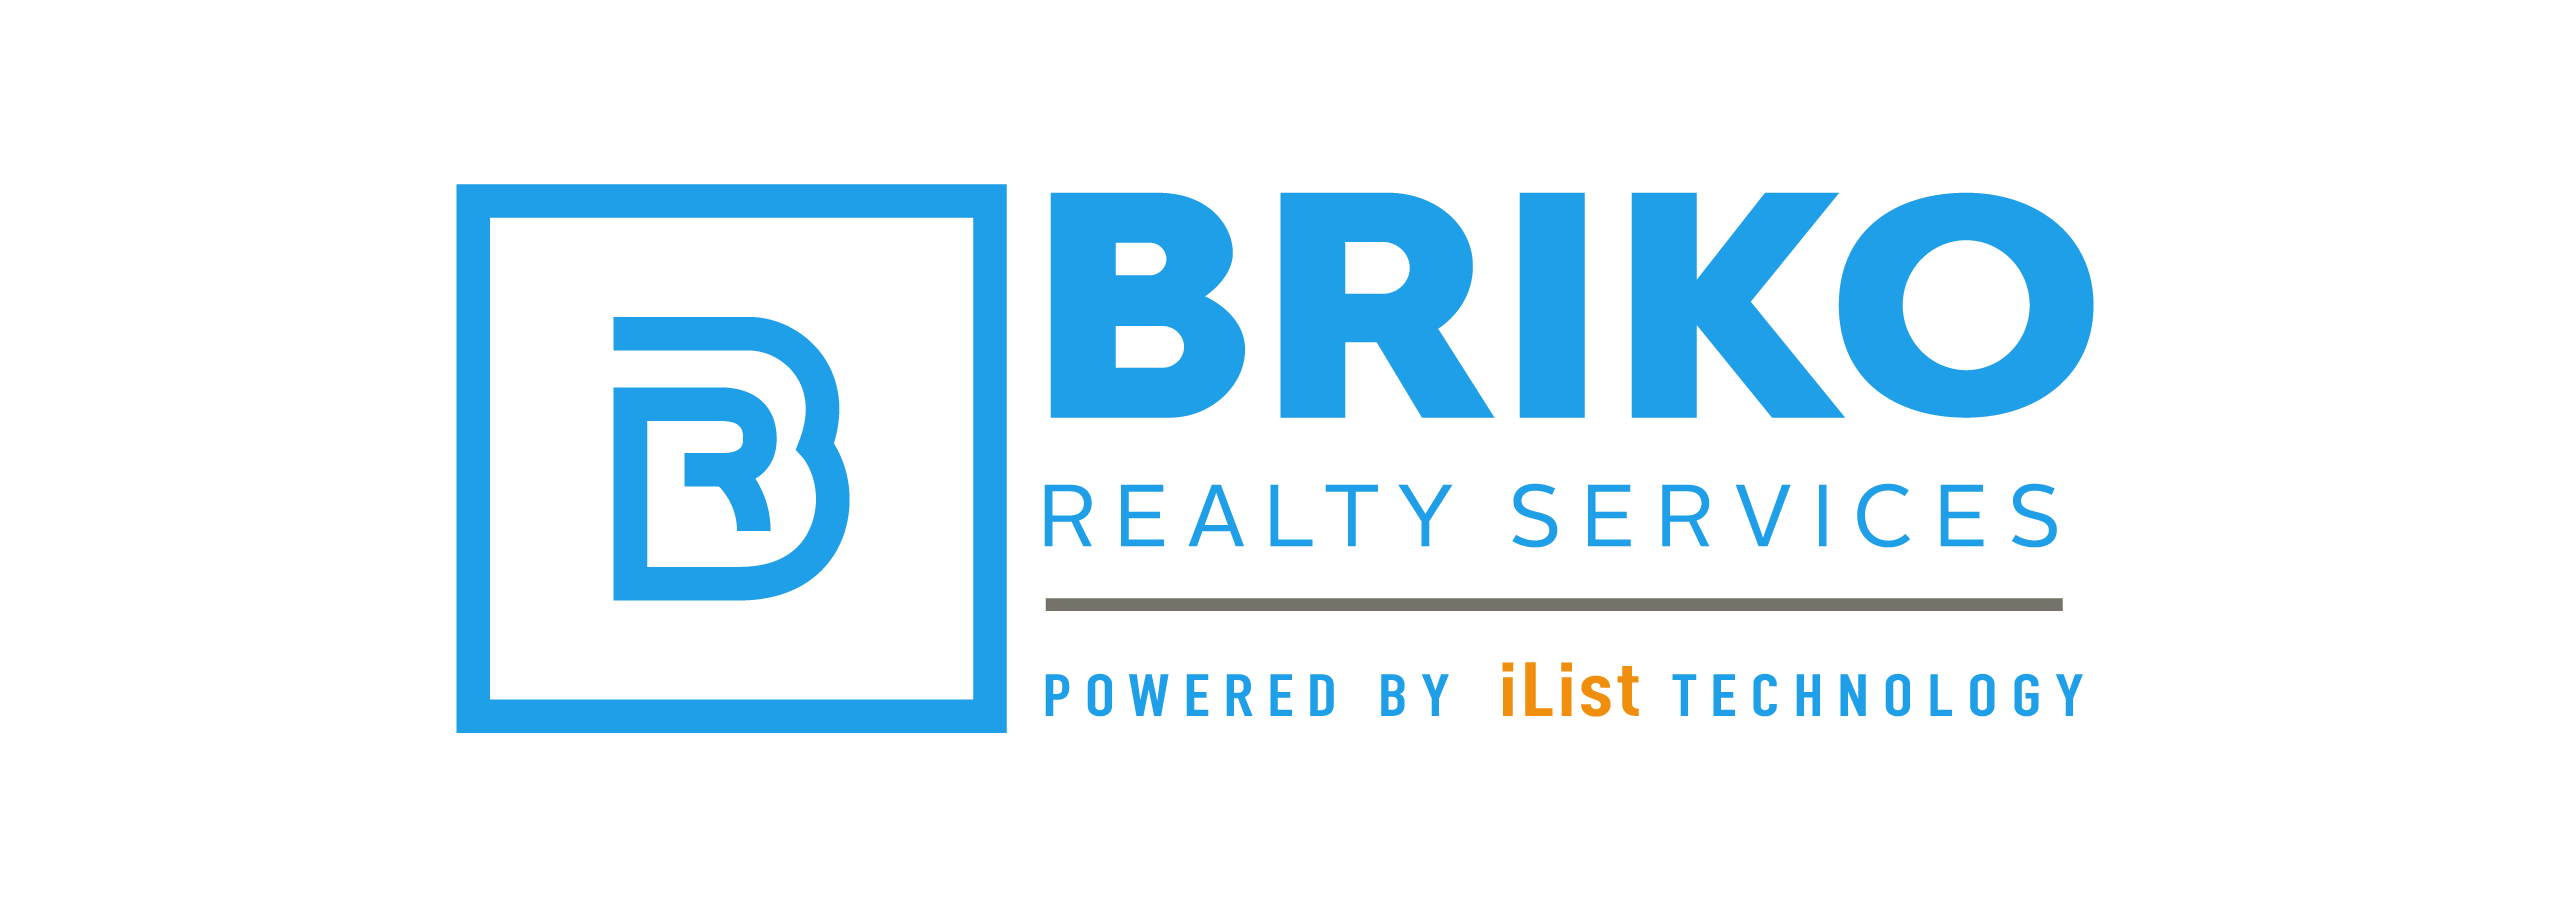 Daniel Terry-Serving the Puget Sound with Briko Realty Services